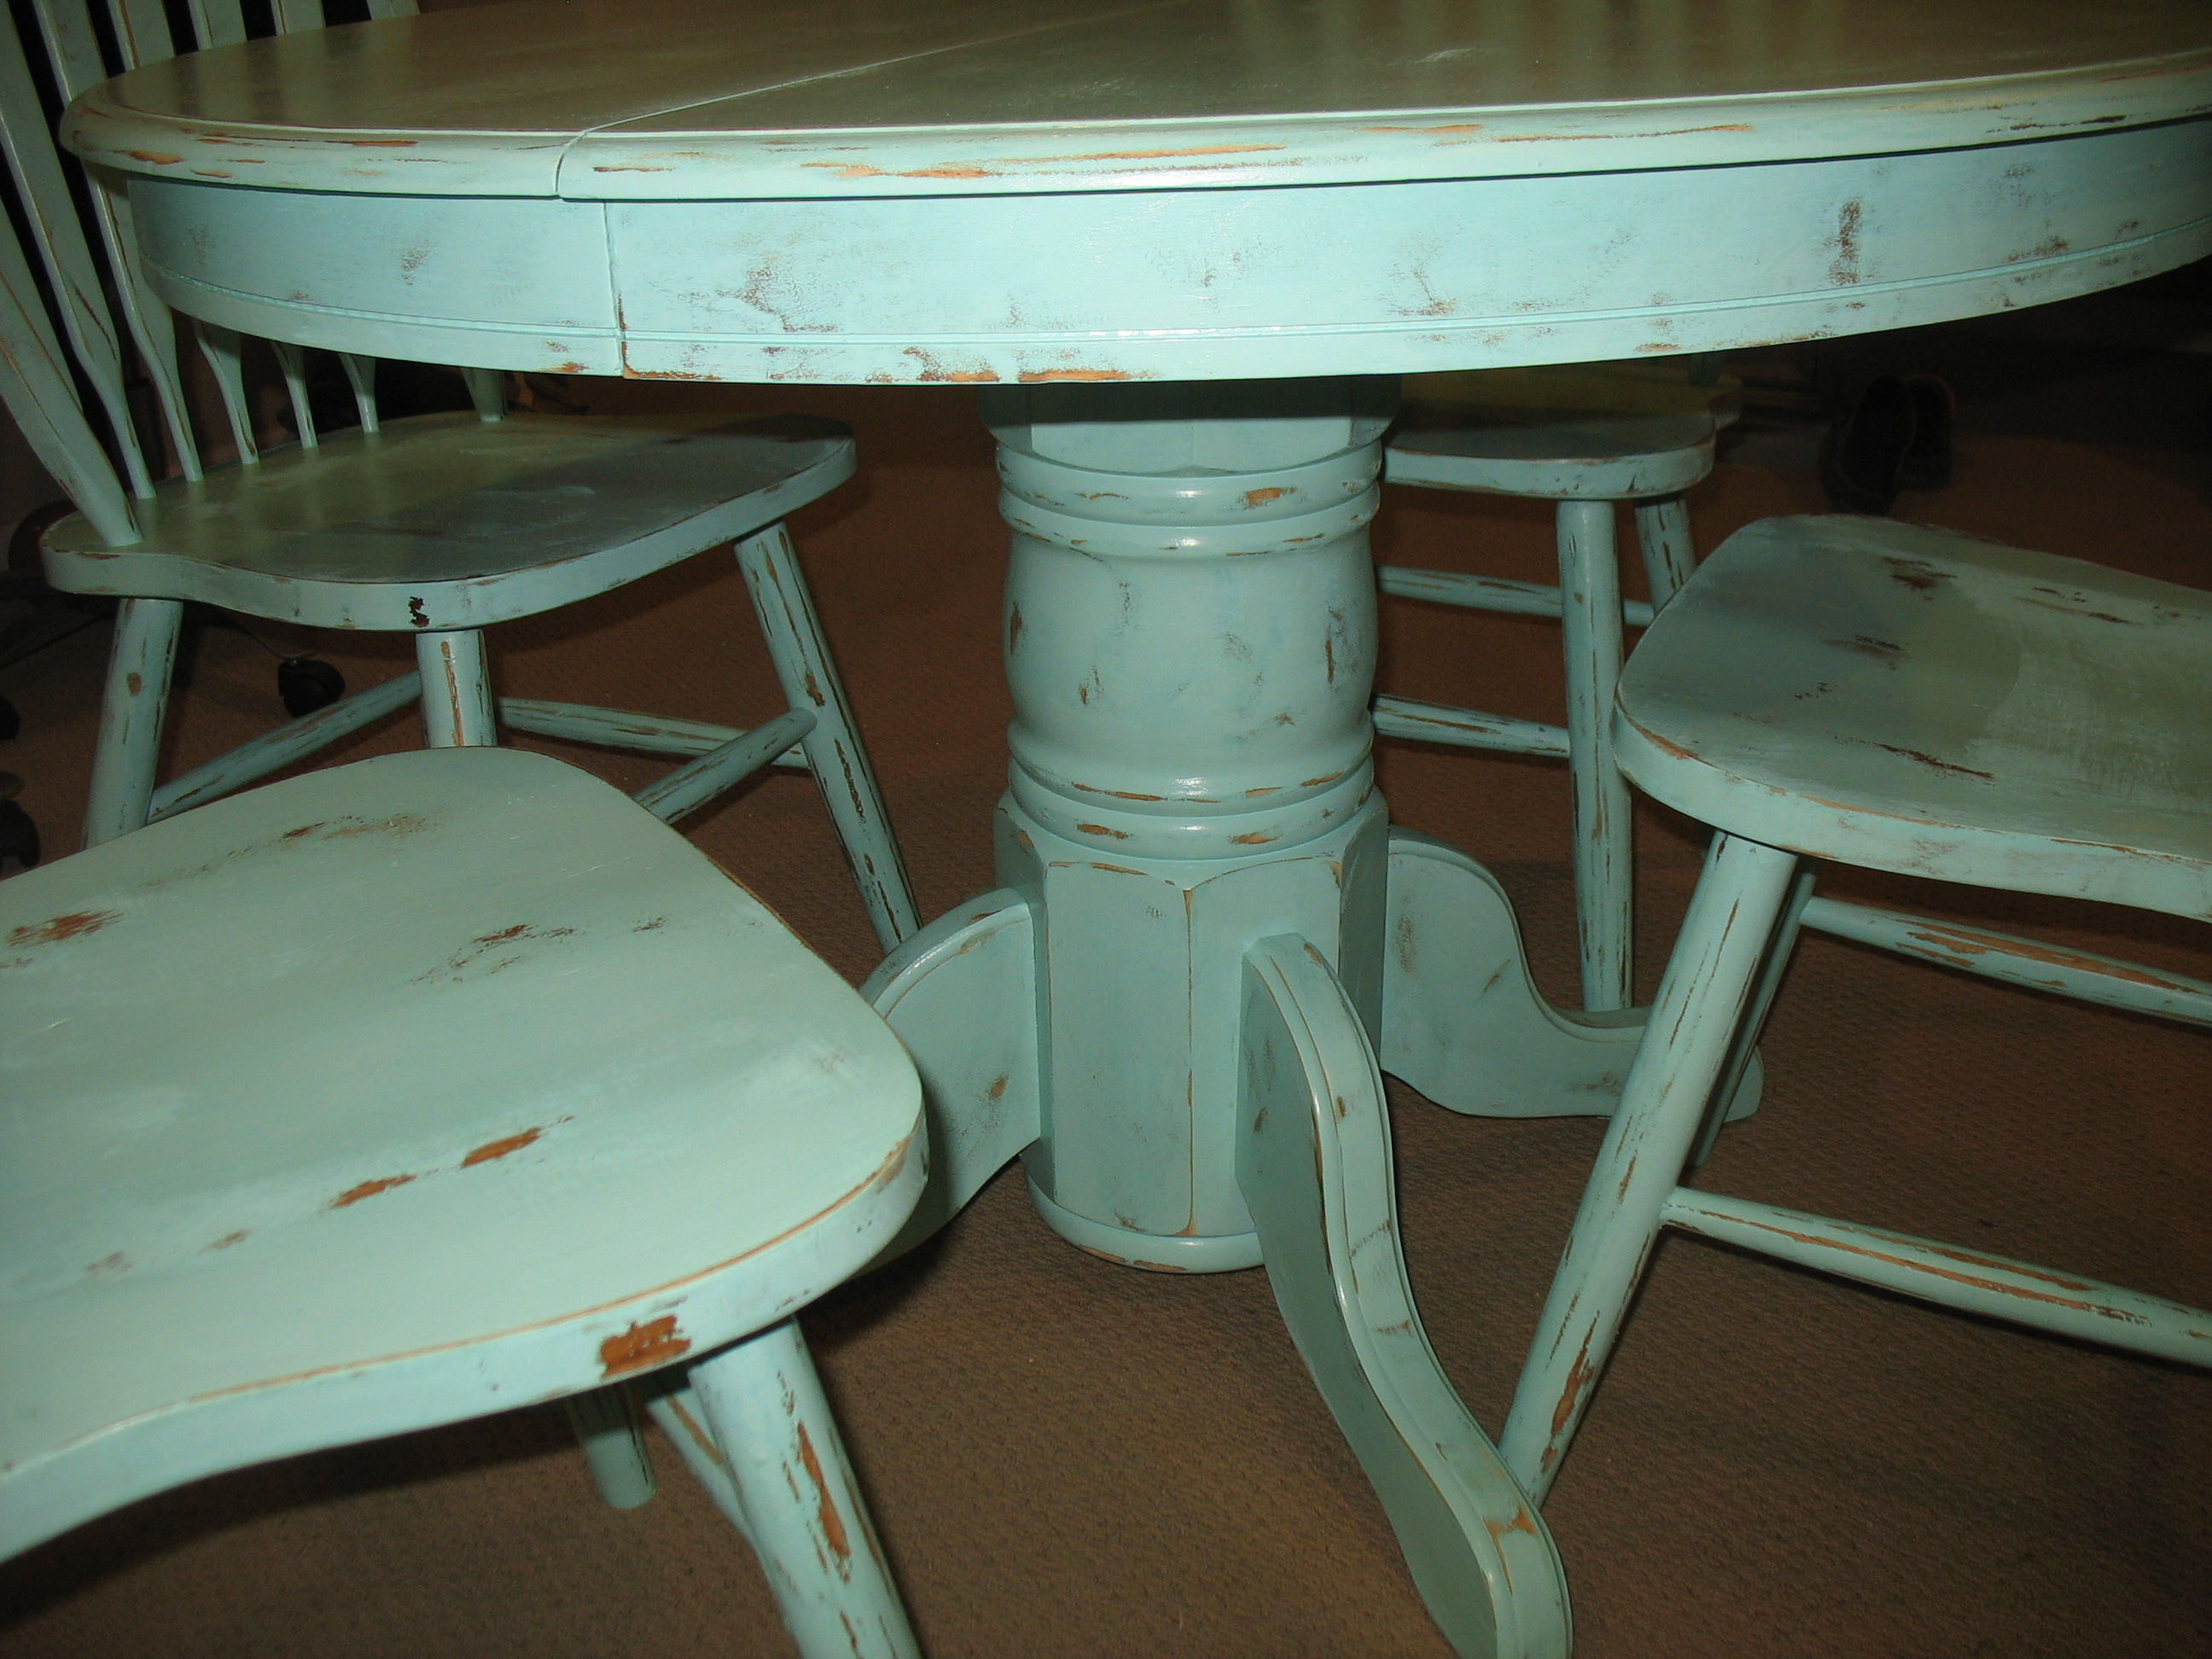 distressed dining set Ladybirds Vintage : 003 from furniturefinishers.wordpress.com size 2592 x 1944 jpeg 1133kB